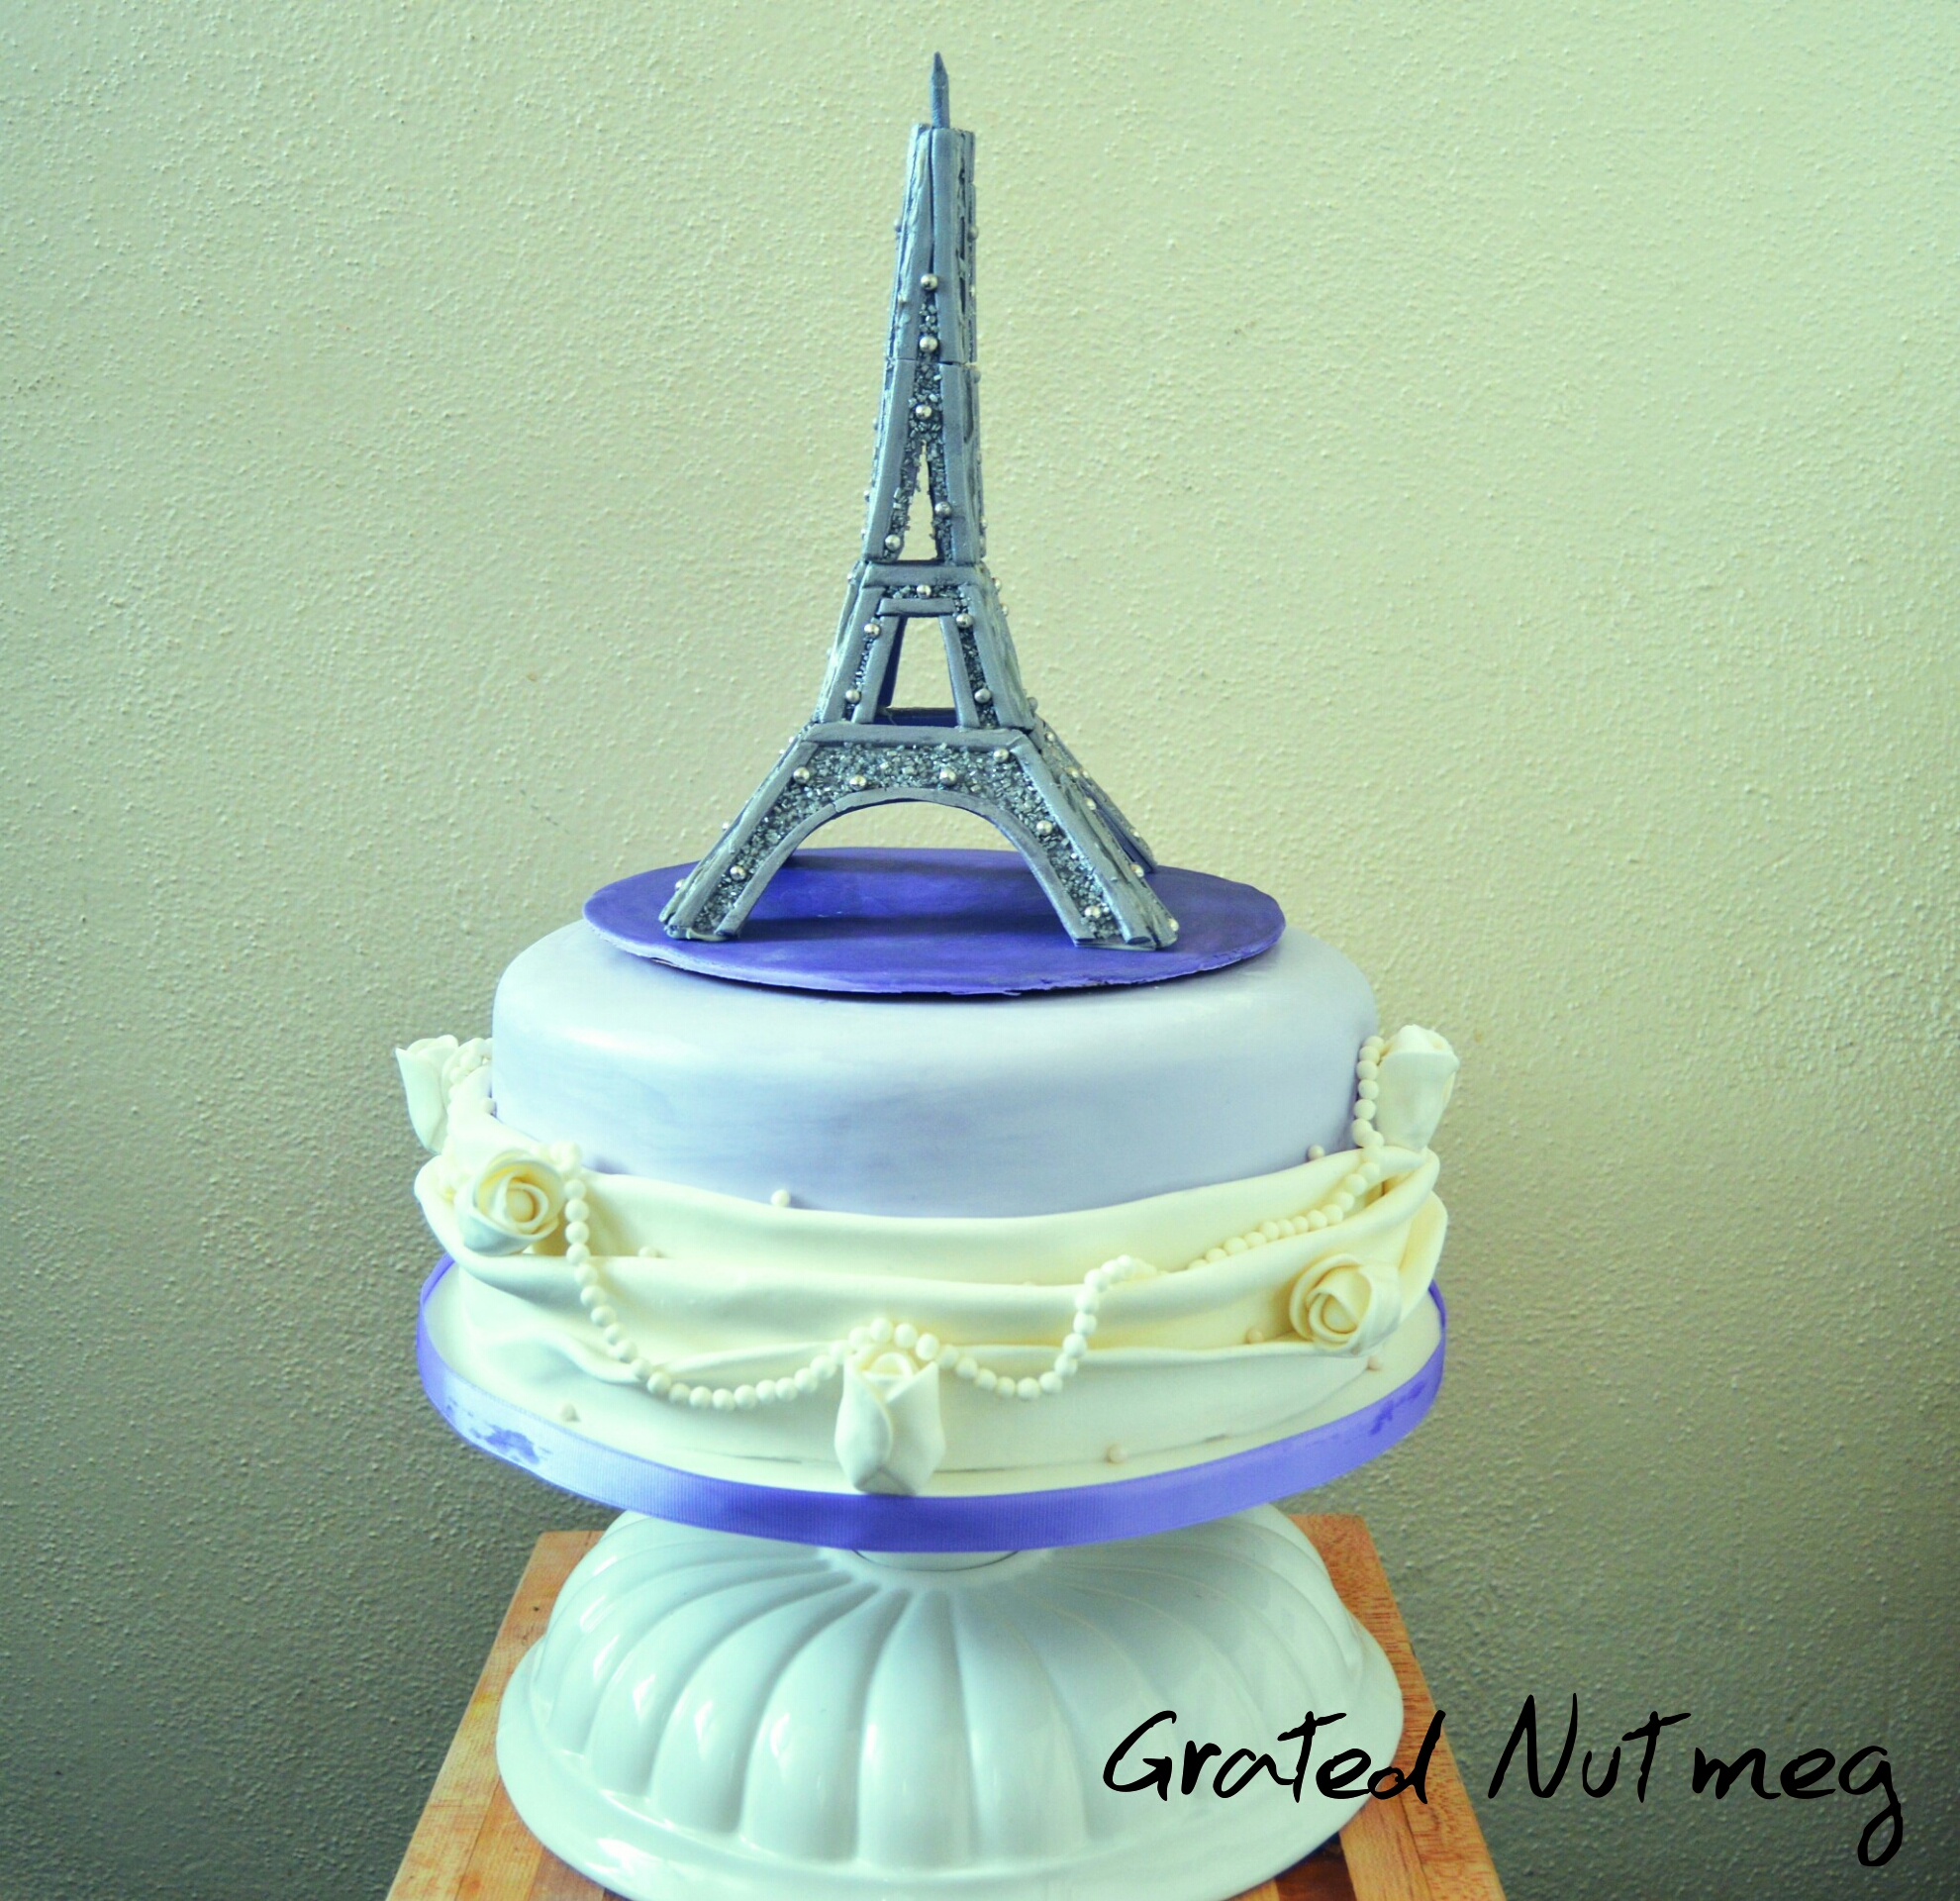 Drawn cake eiffel tower Grated Fondant Tower paris 3D